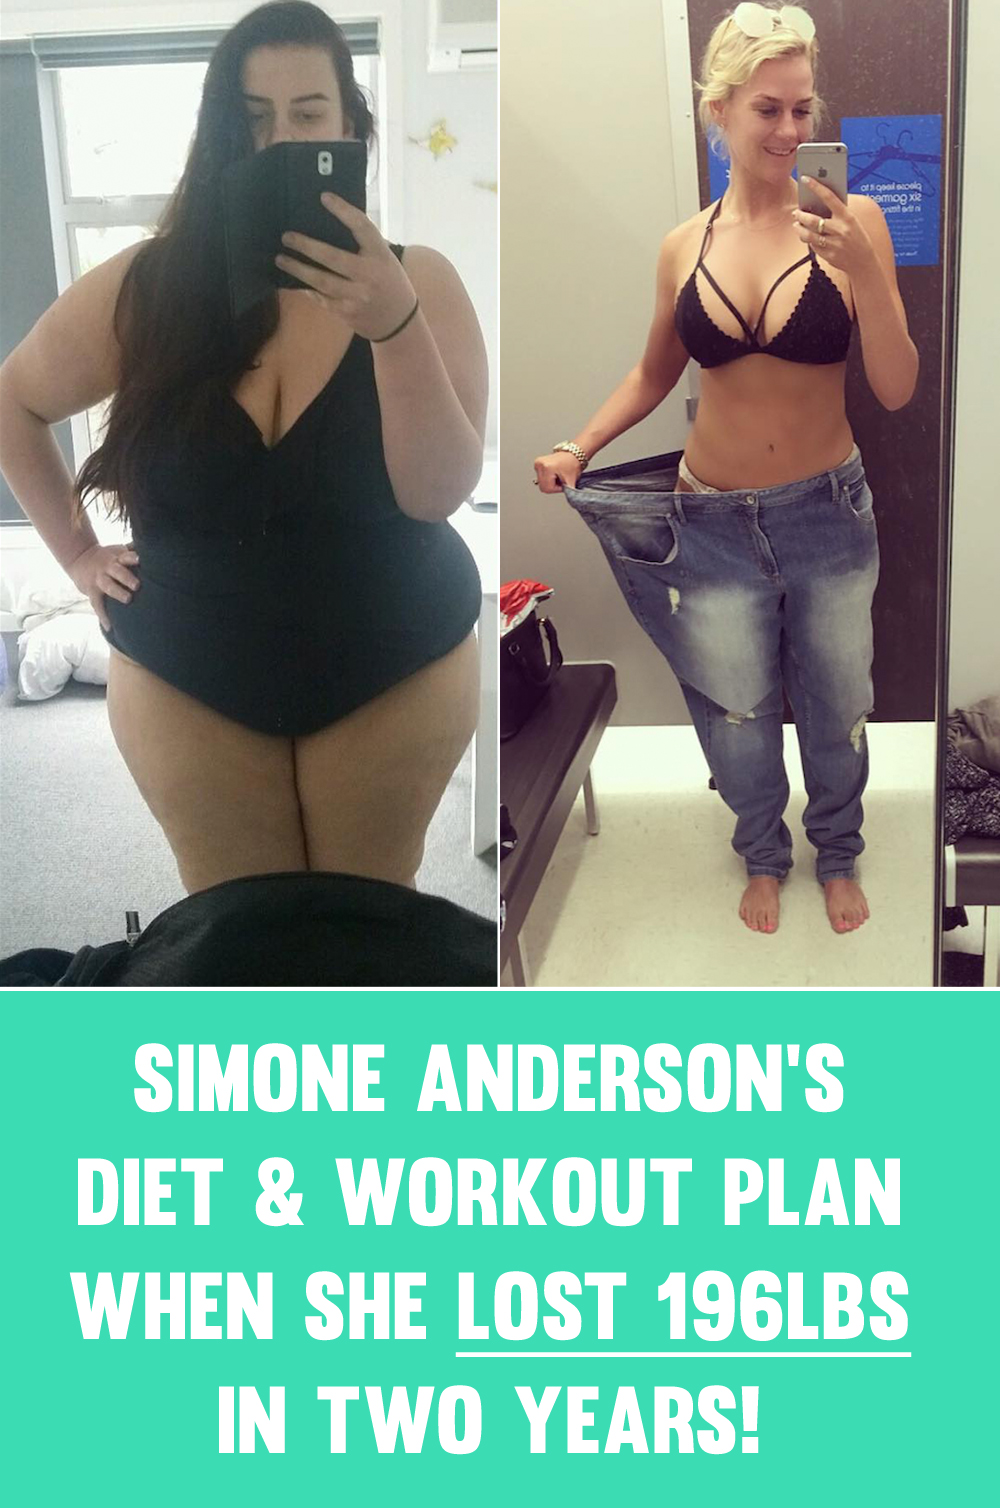 Simone Anderson's Full Diet & Workout Plan For How She Lost Almost 200lbs!